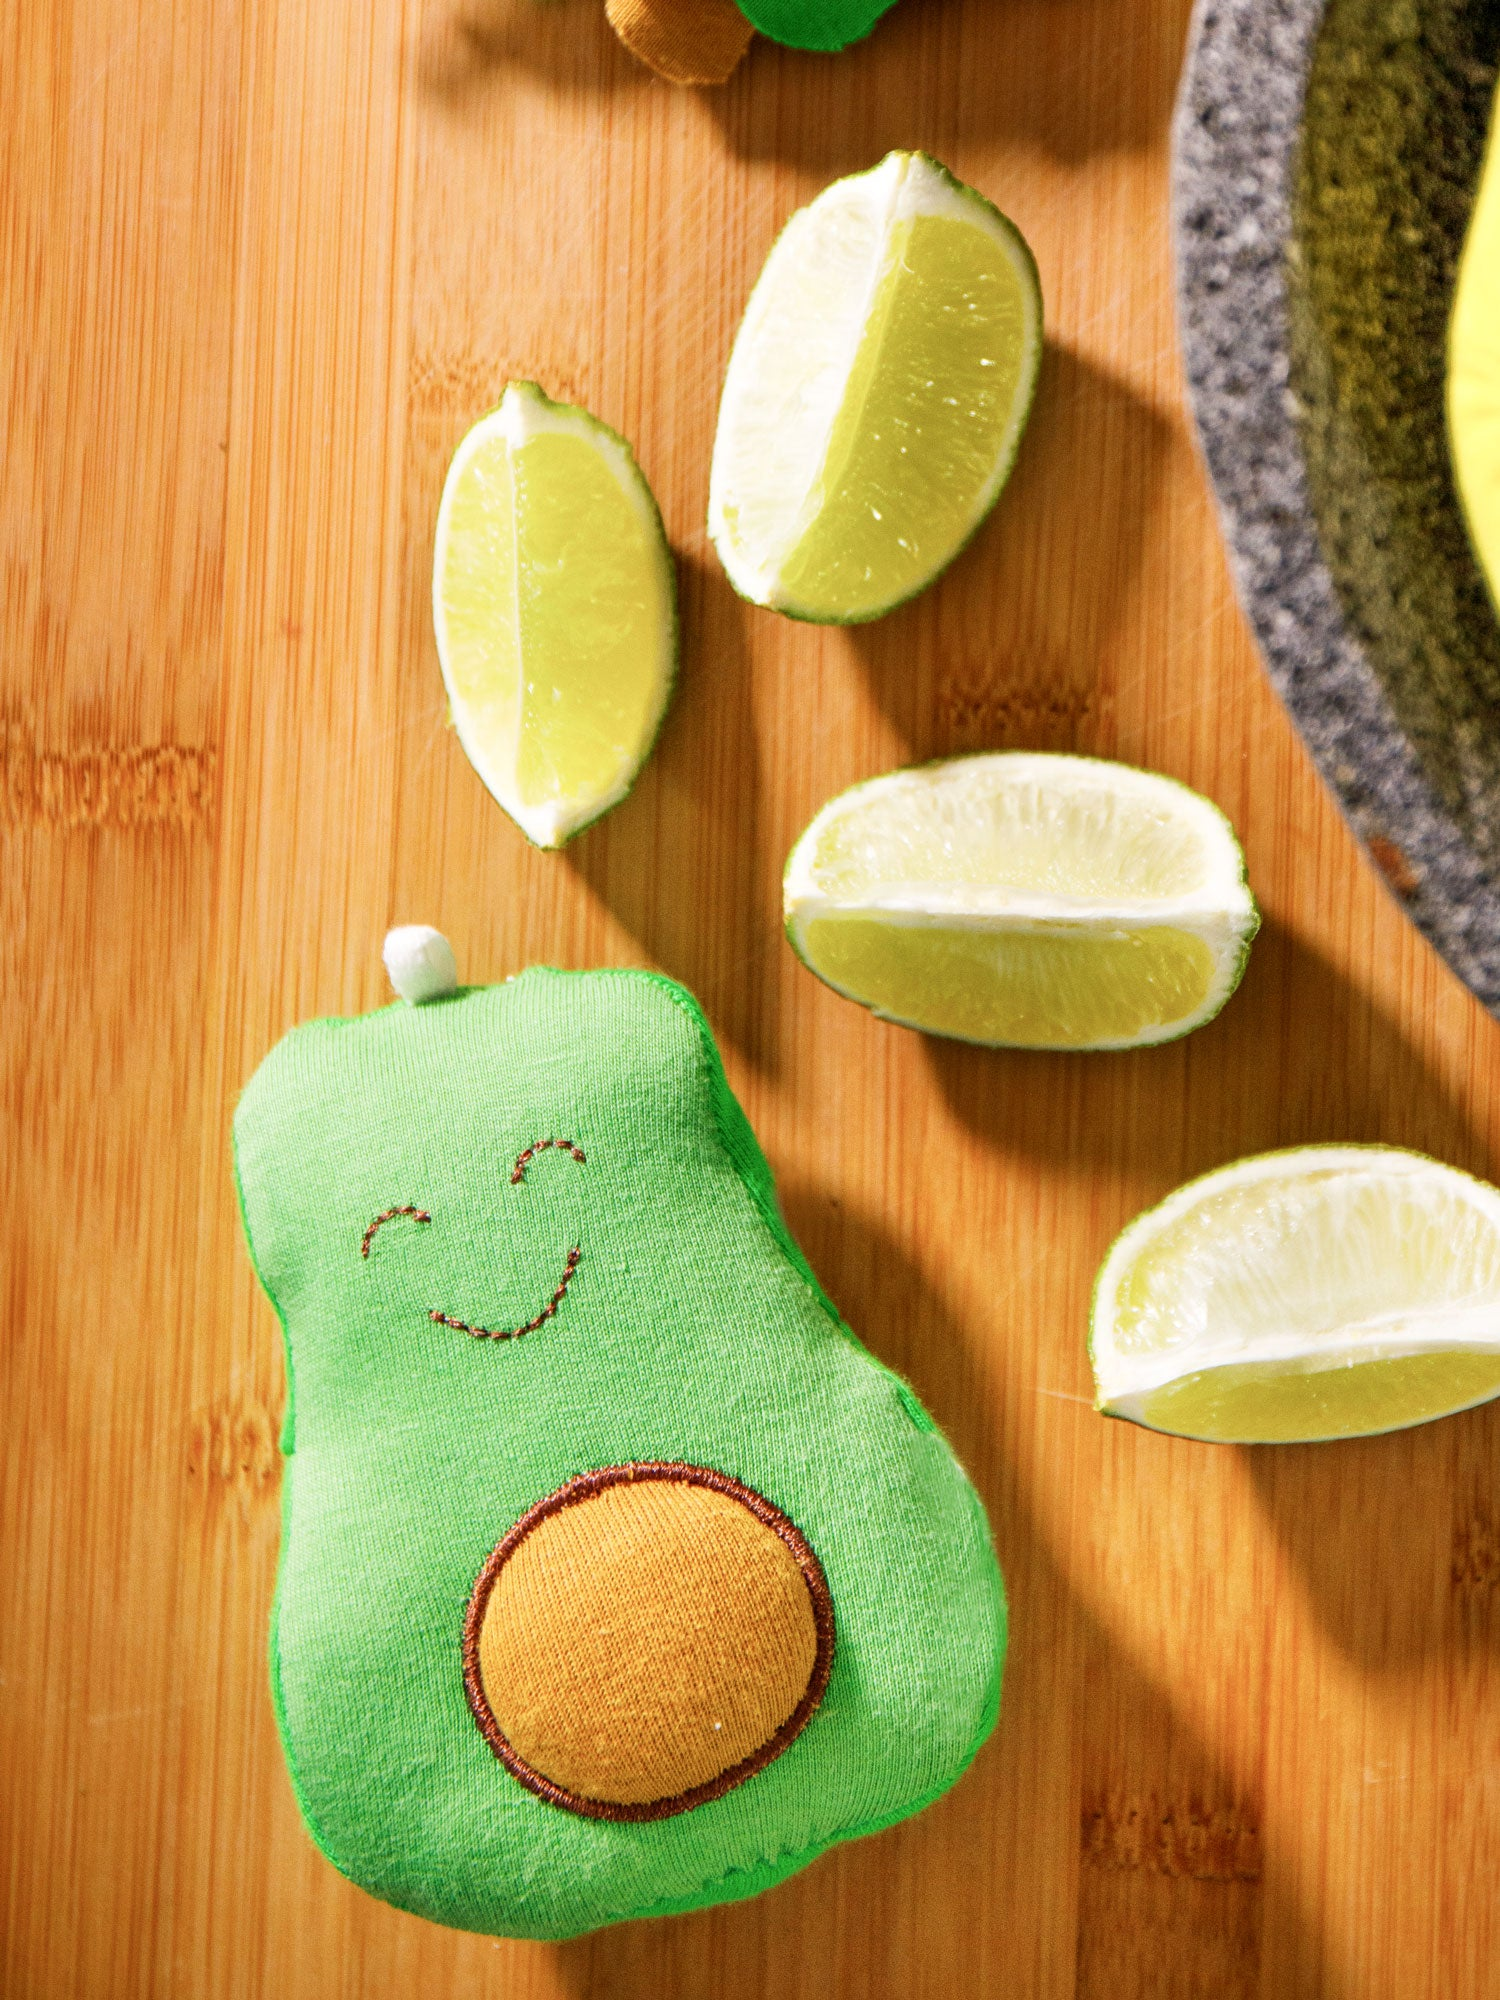 Avocado Stuffed Toy